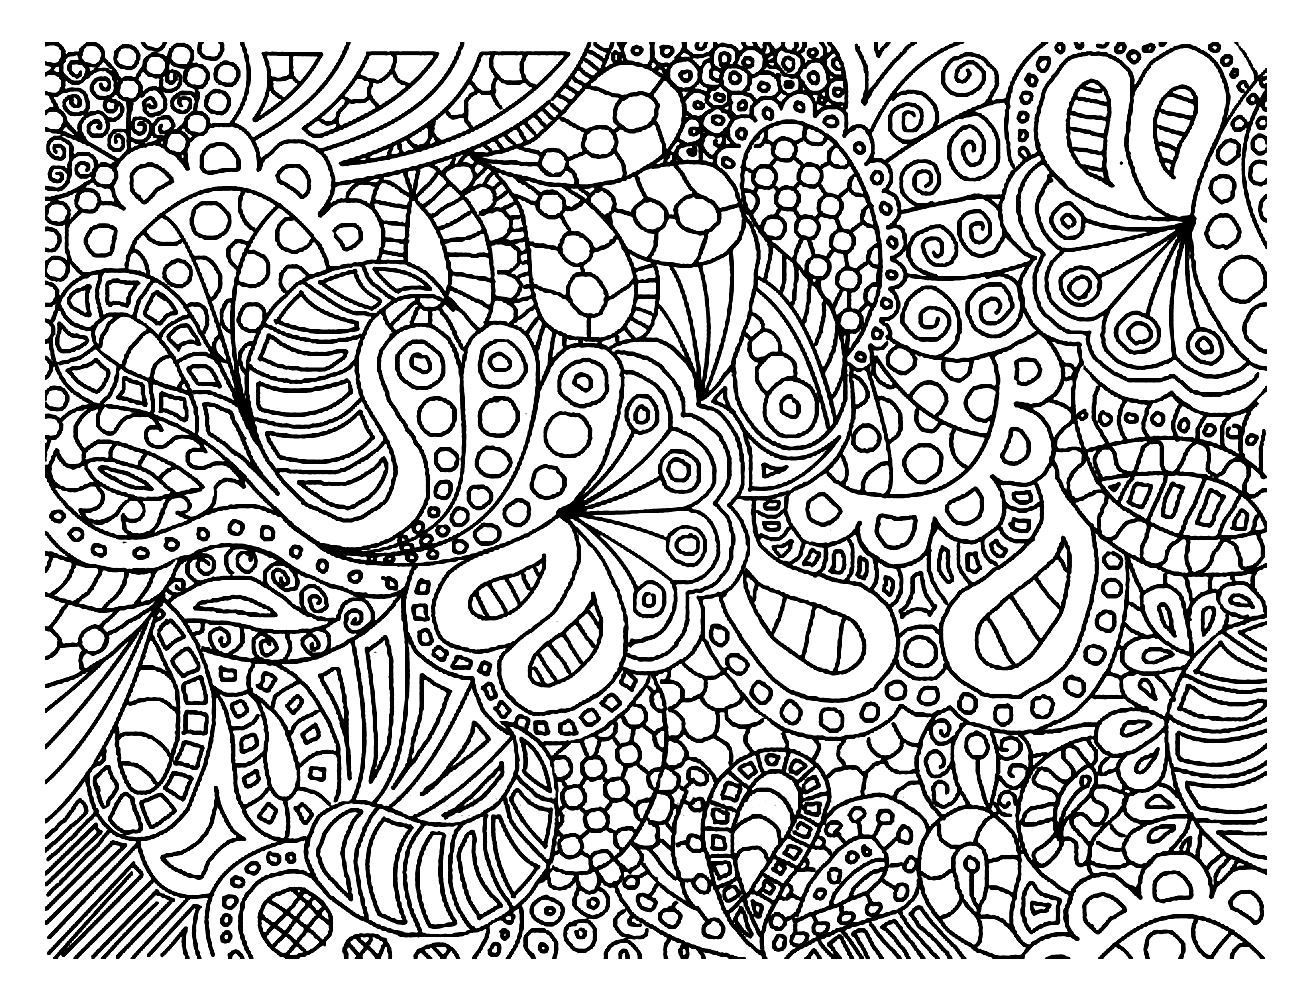 Free coloring page coloring-doodle-art-doodling-2. Doodling is ...